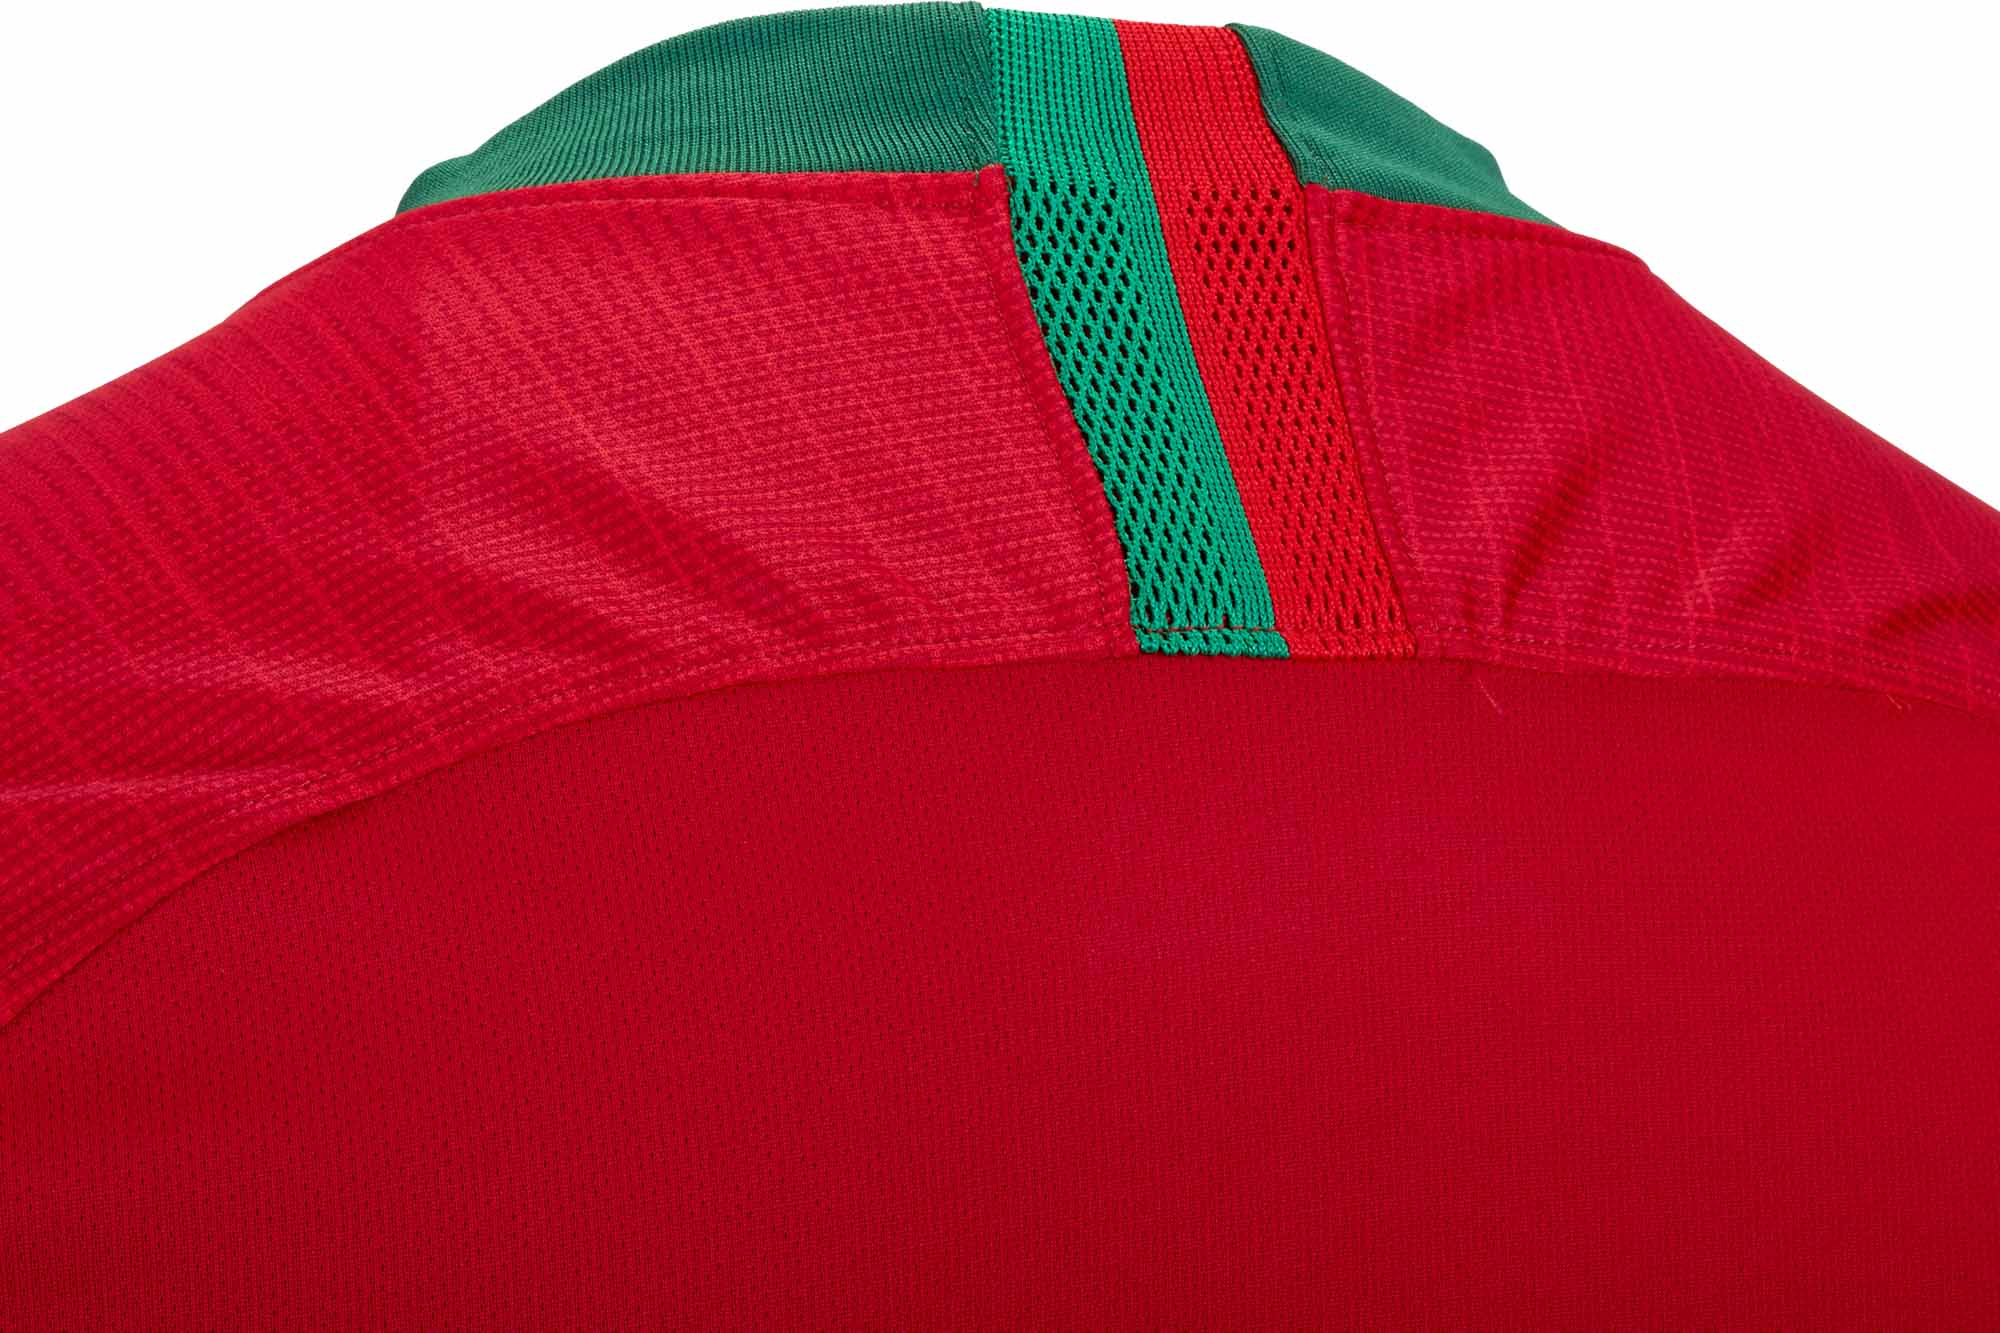 6c1d0a8dd 2018/19 Nike Portugal Home Jersey - Soccer Master